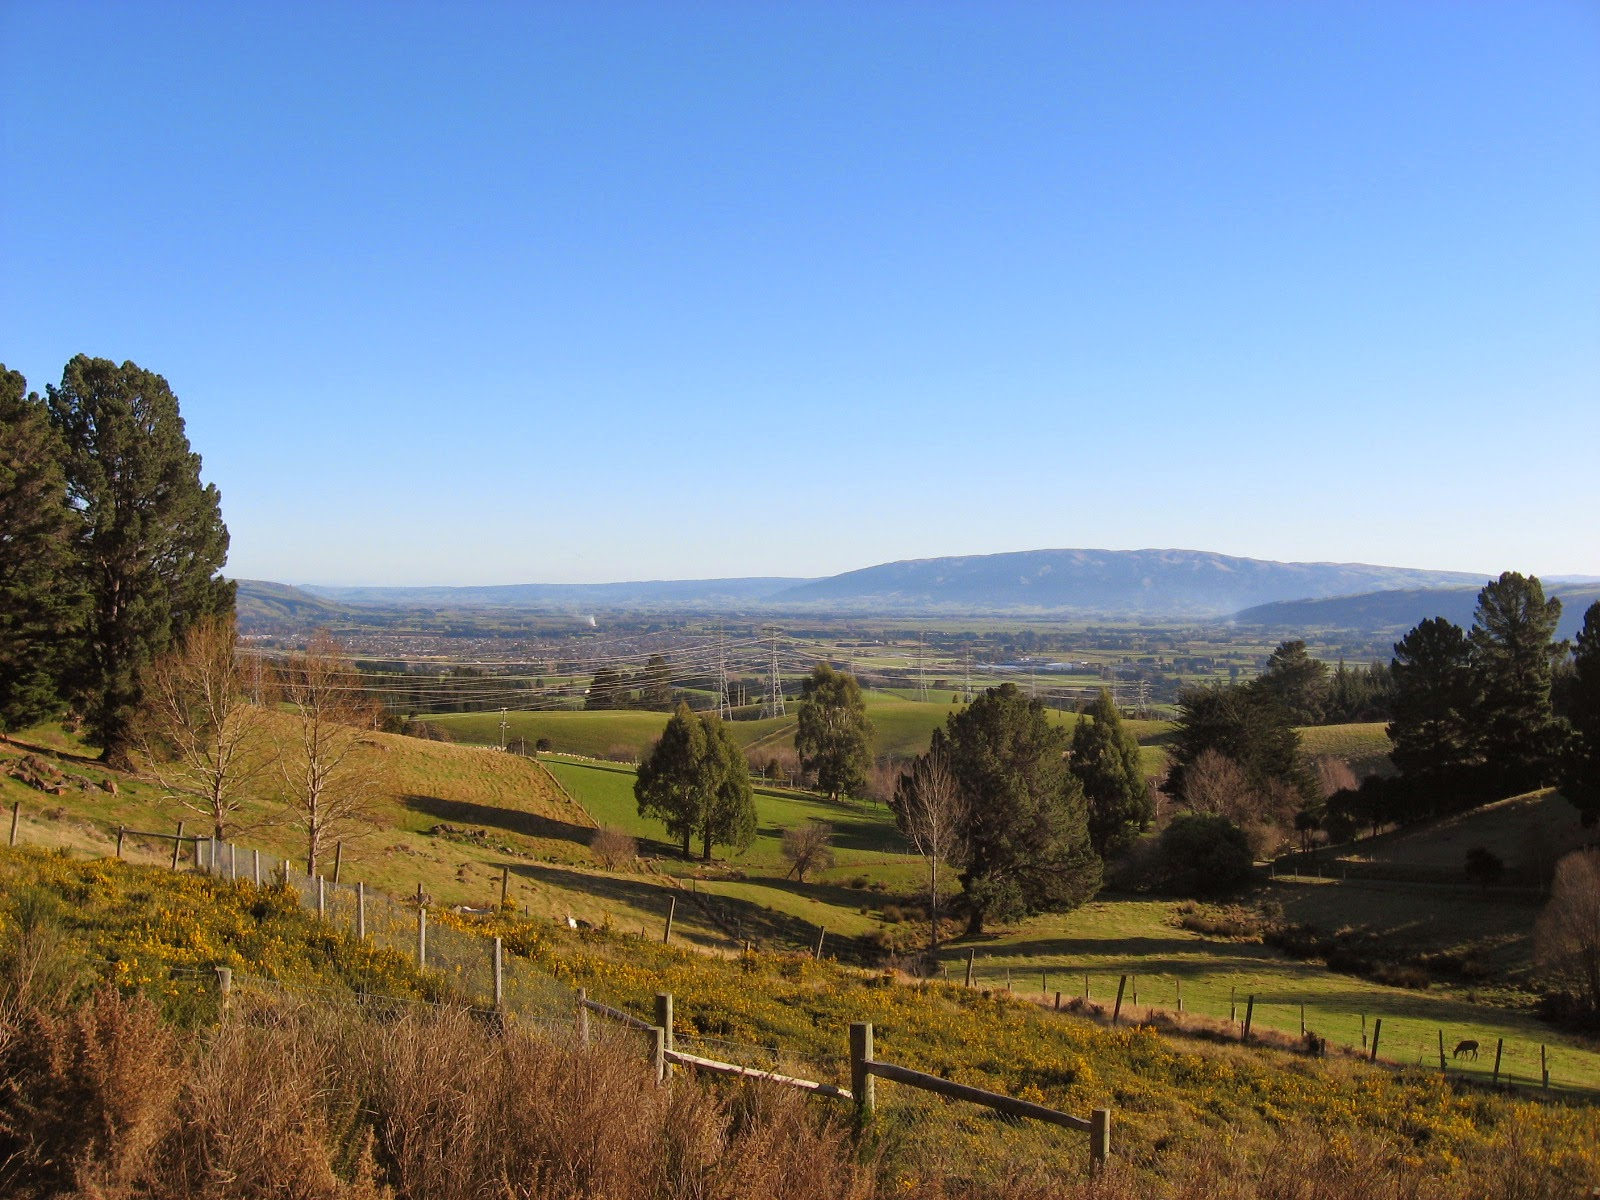 The Taieri Plain